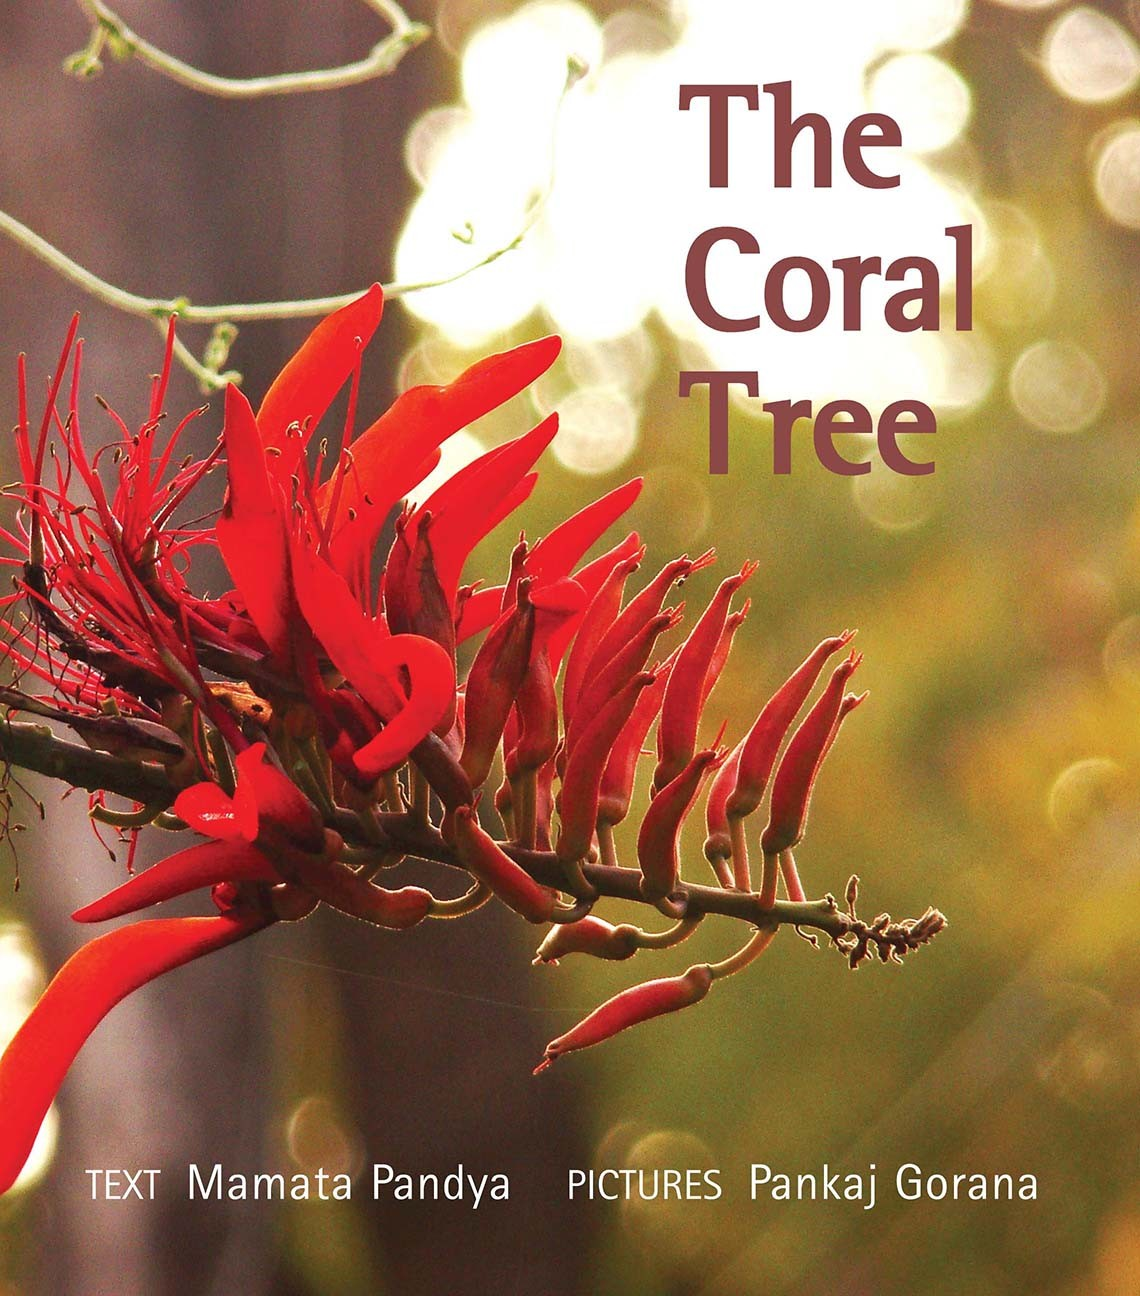 The Coral Tree (English)